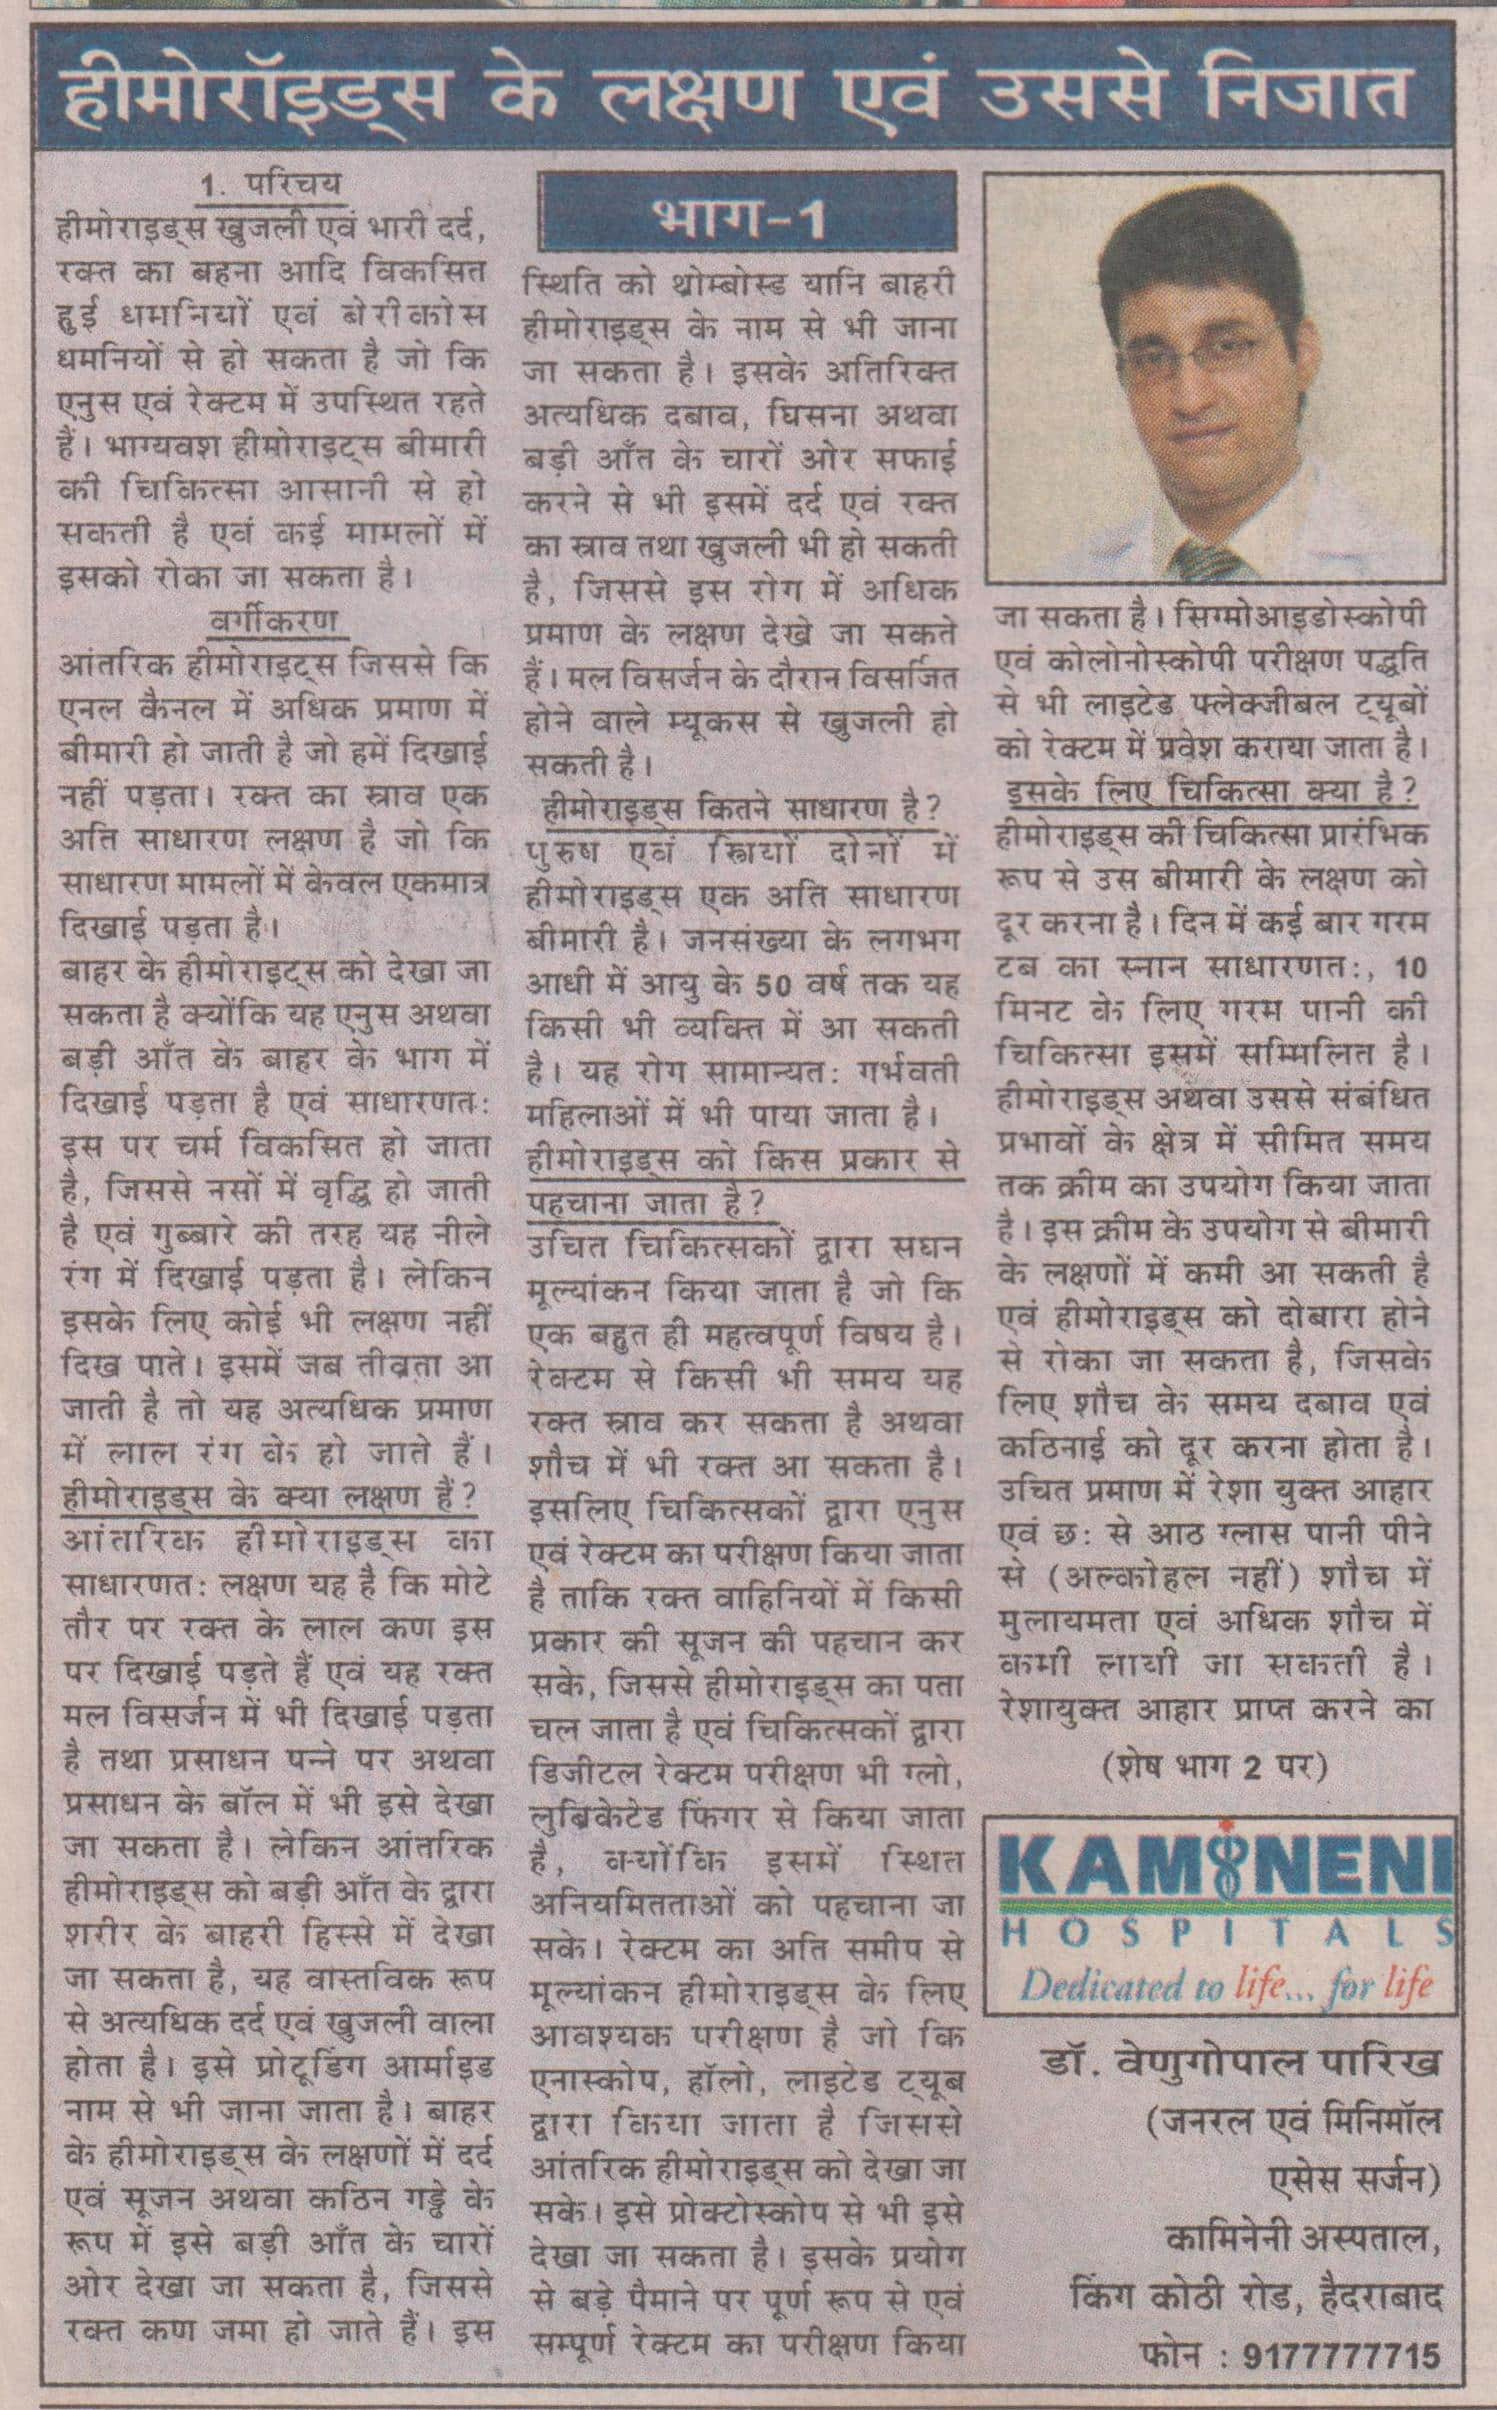 Consult Dr V Pareek, Best Laparoscopy surgeon for Stones Removal in Gall Bladder